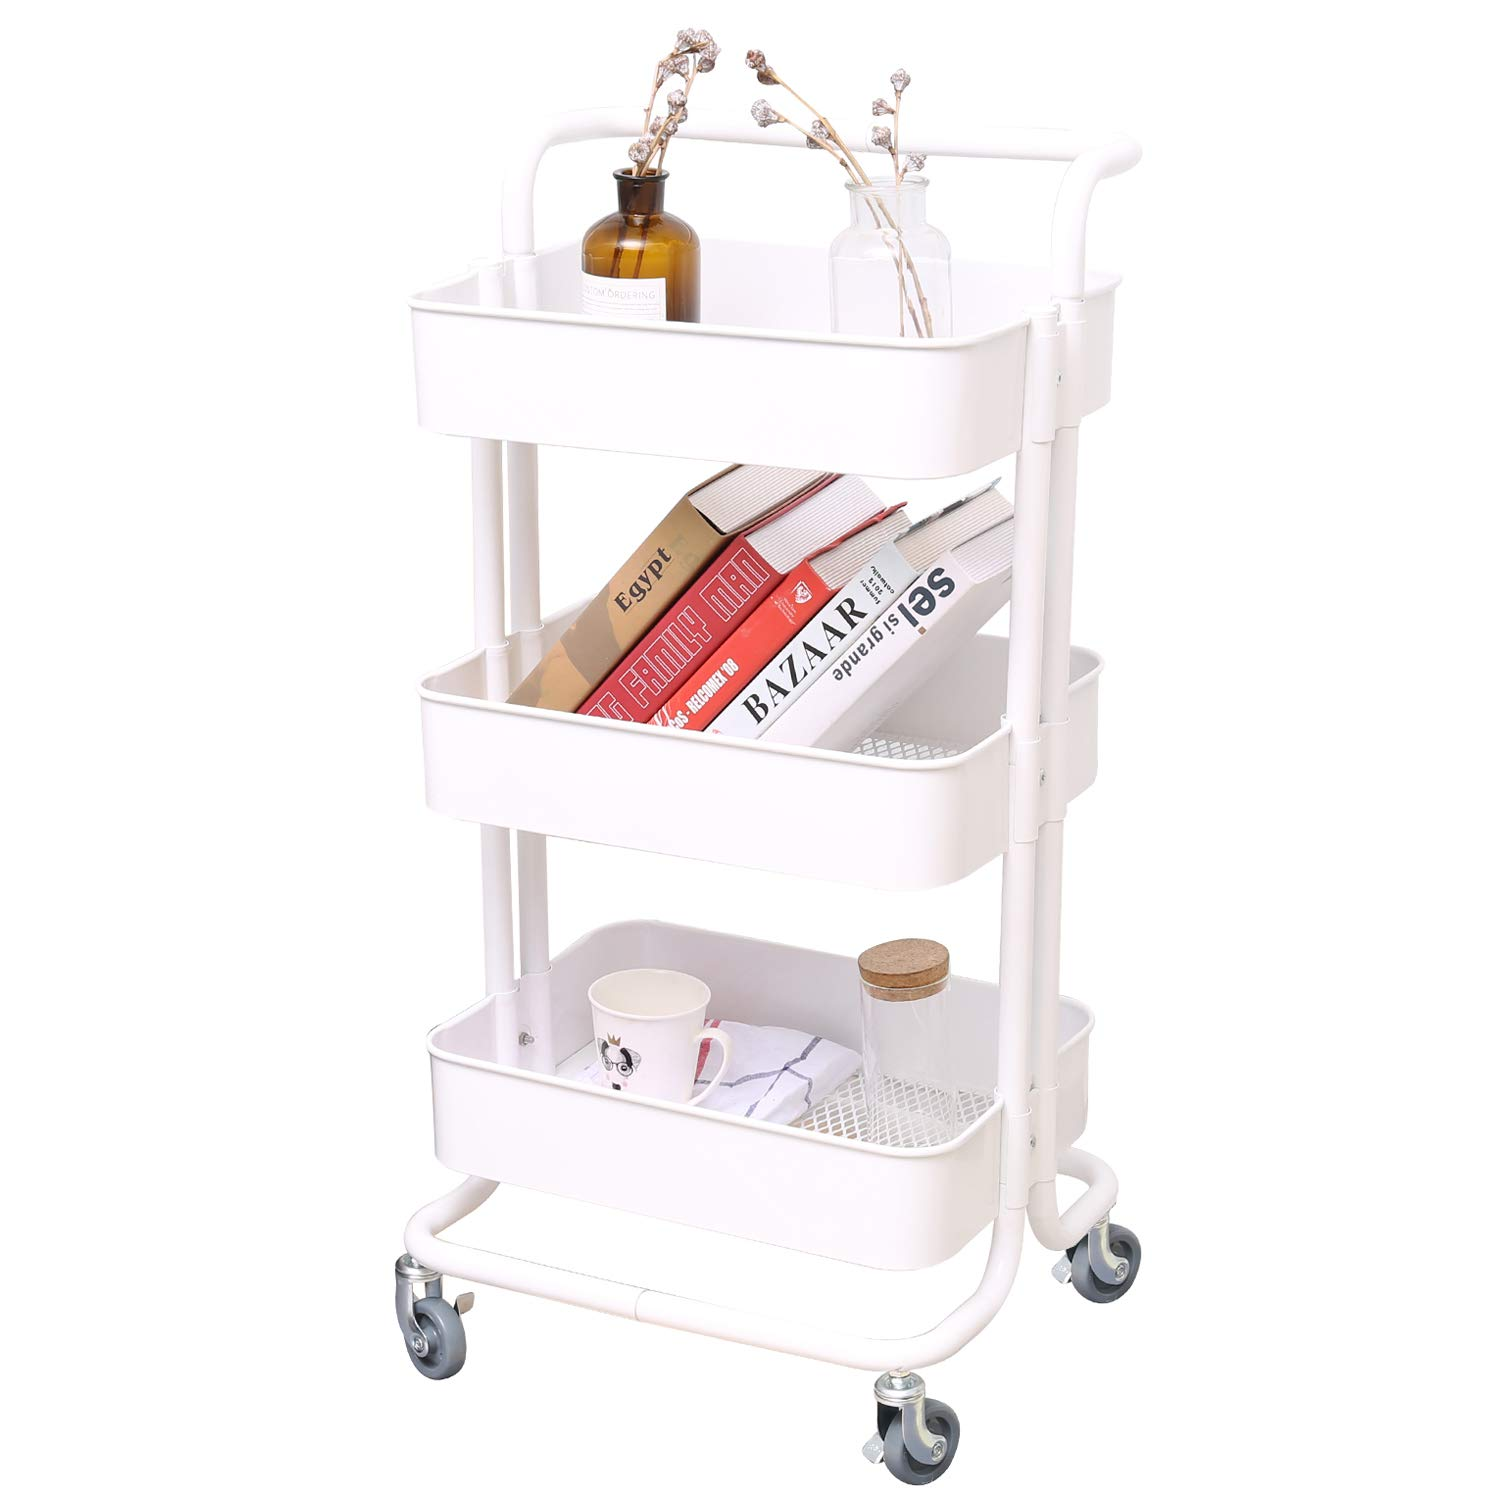 3-Tier Metal Mesh Storage Utility Cart with Brake Caster Wheels, Rolling Cart with Utility Handle, Cream White